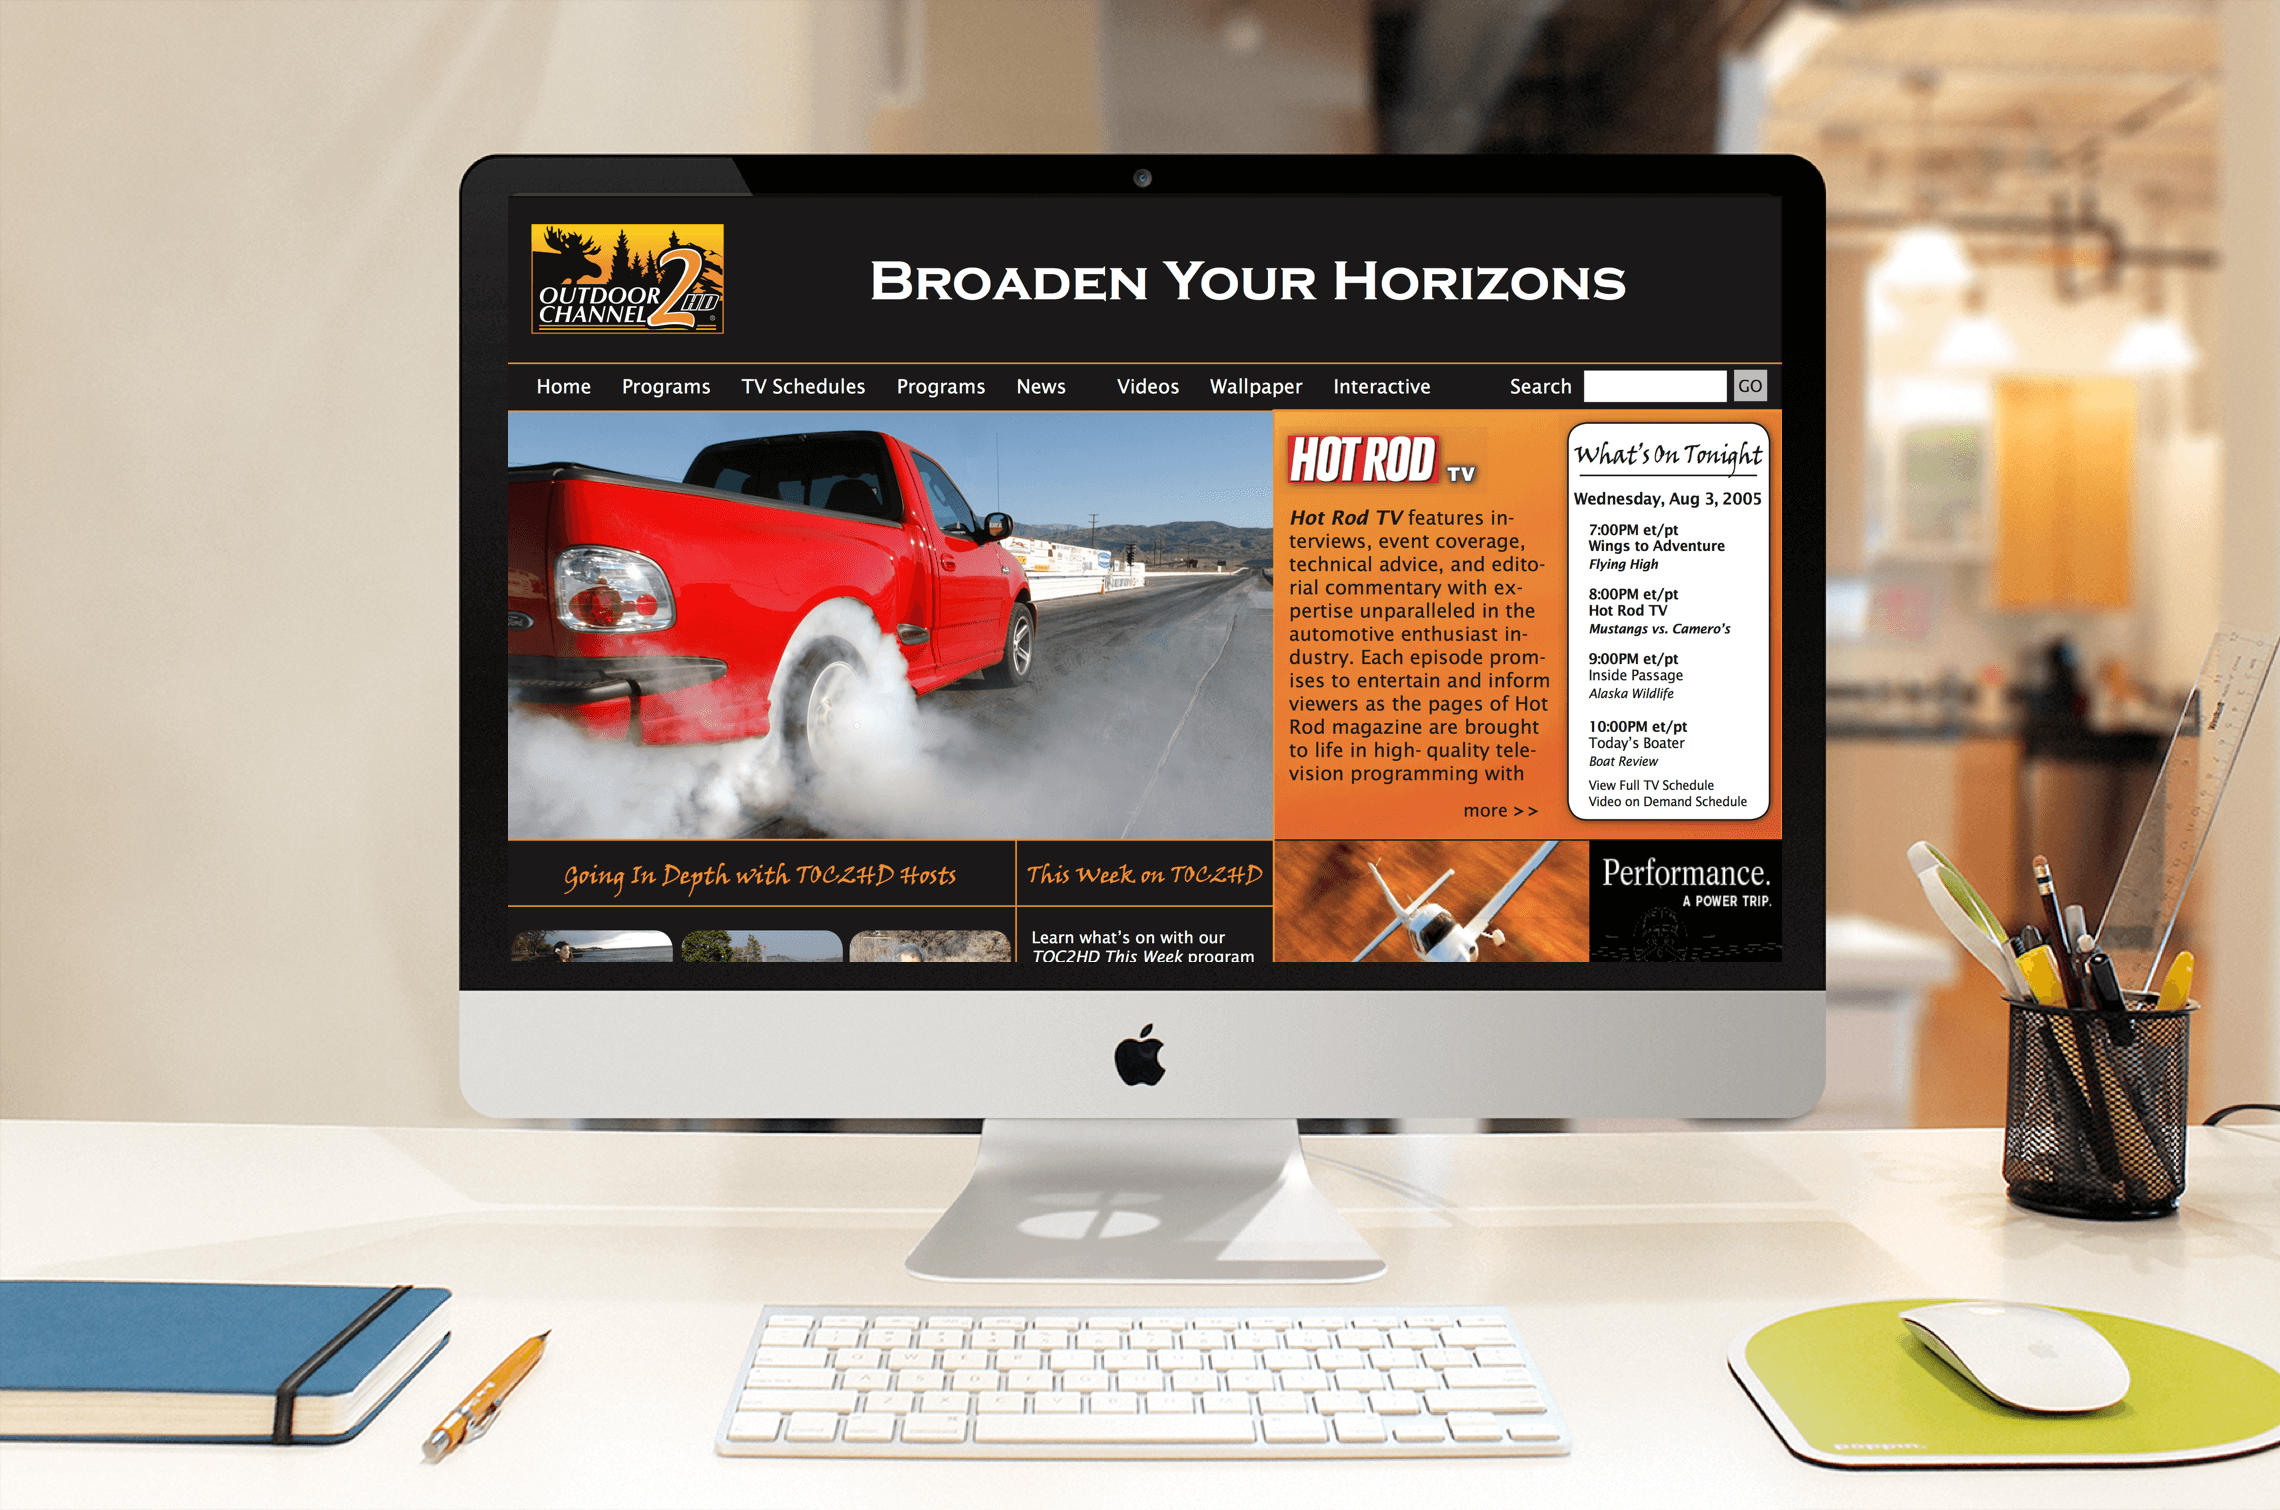 wordpress-outdoor-channel-fi-2 (1)